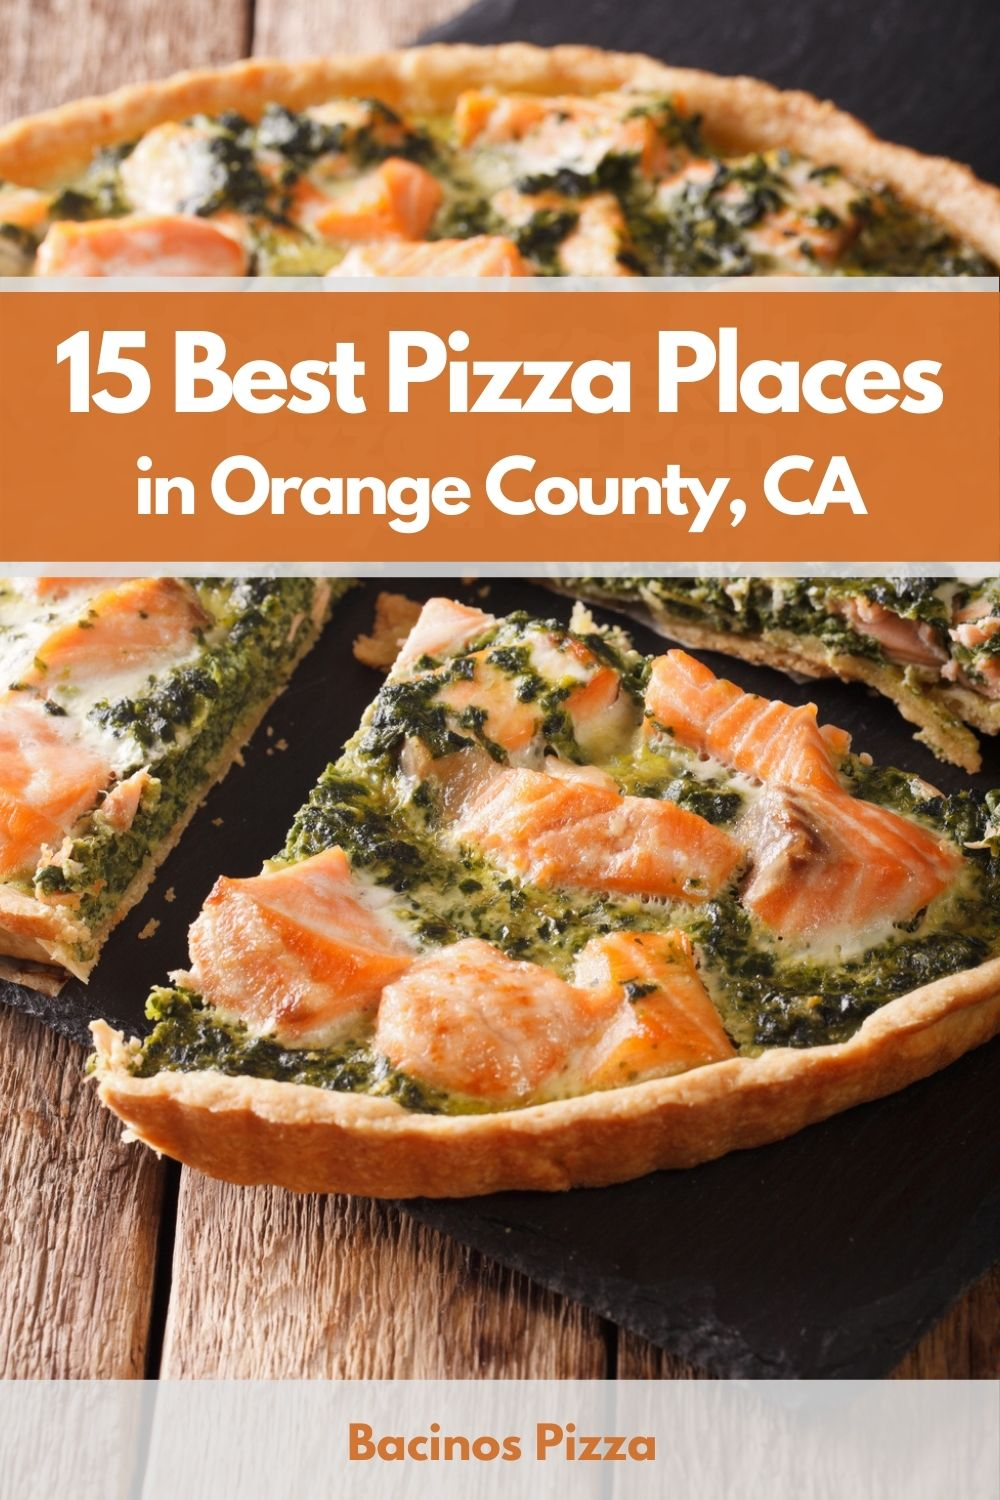 15 Best Pizza Places in Orange County, CA pin